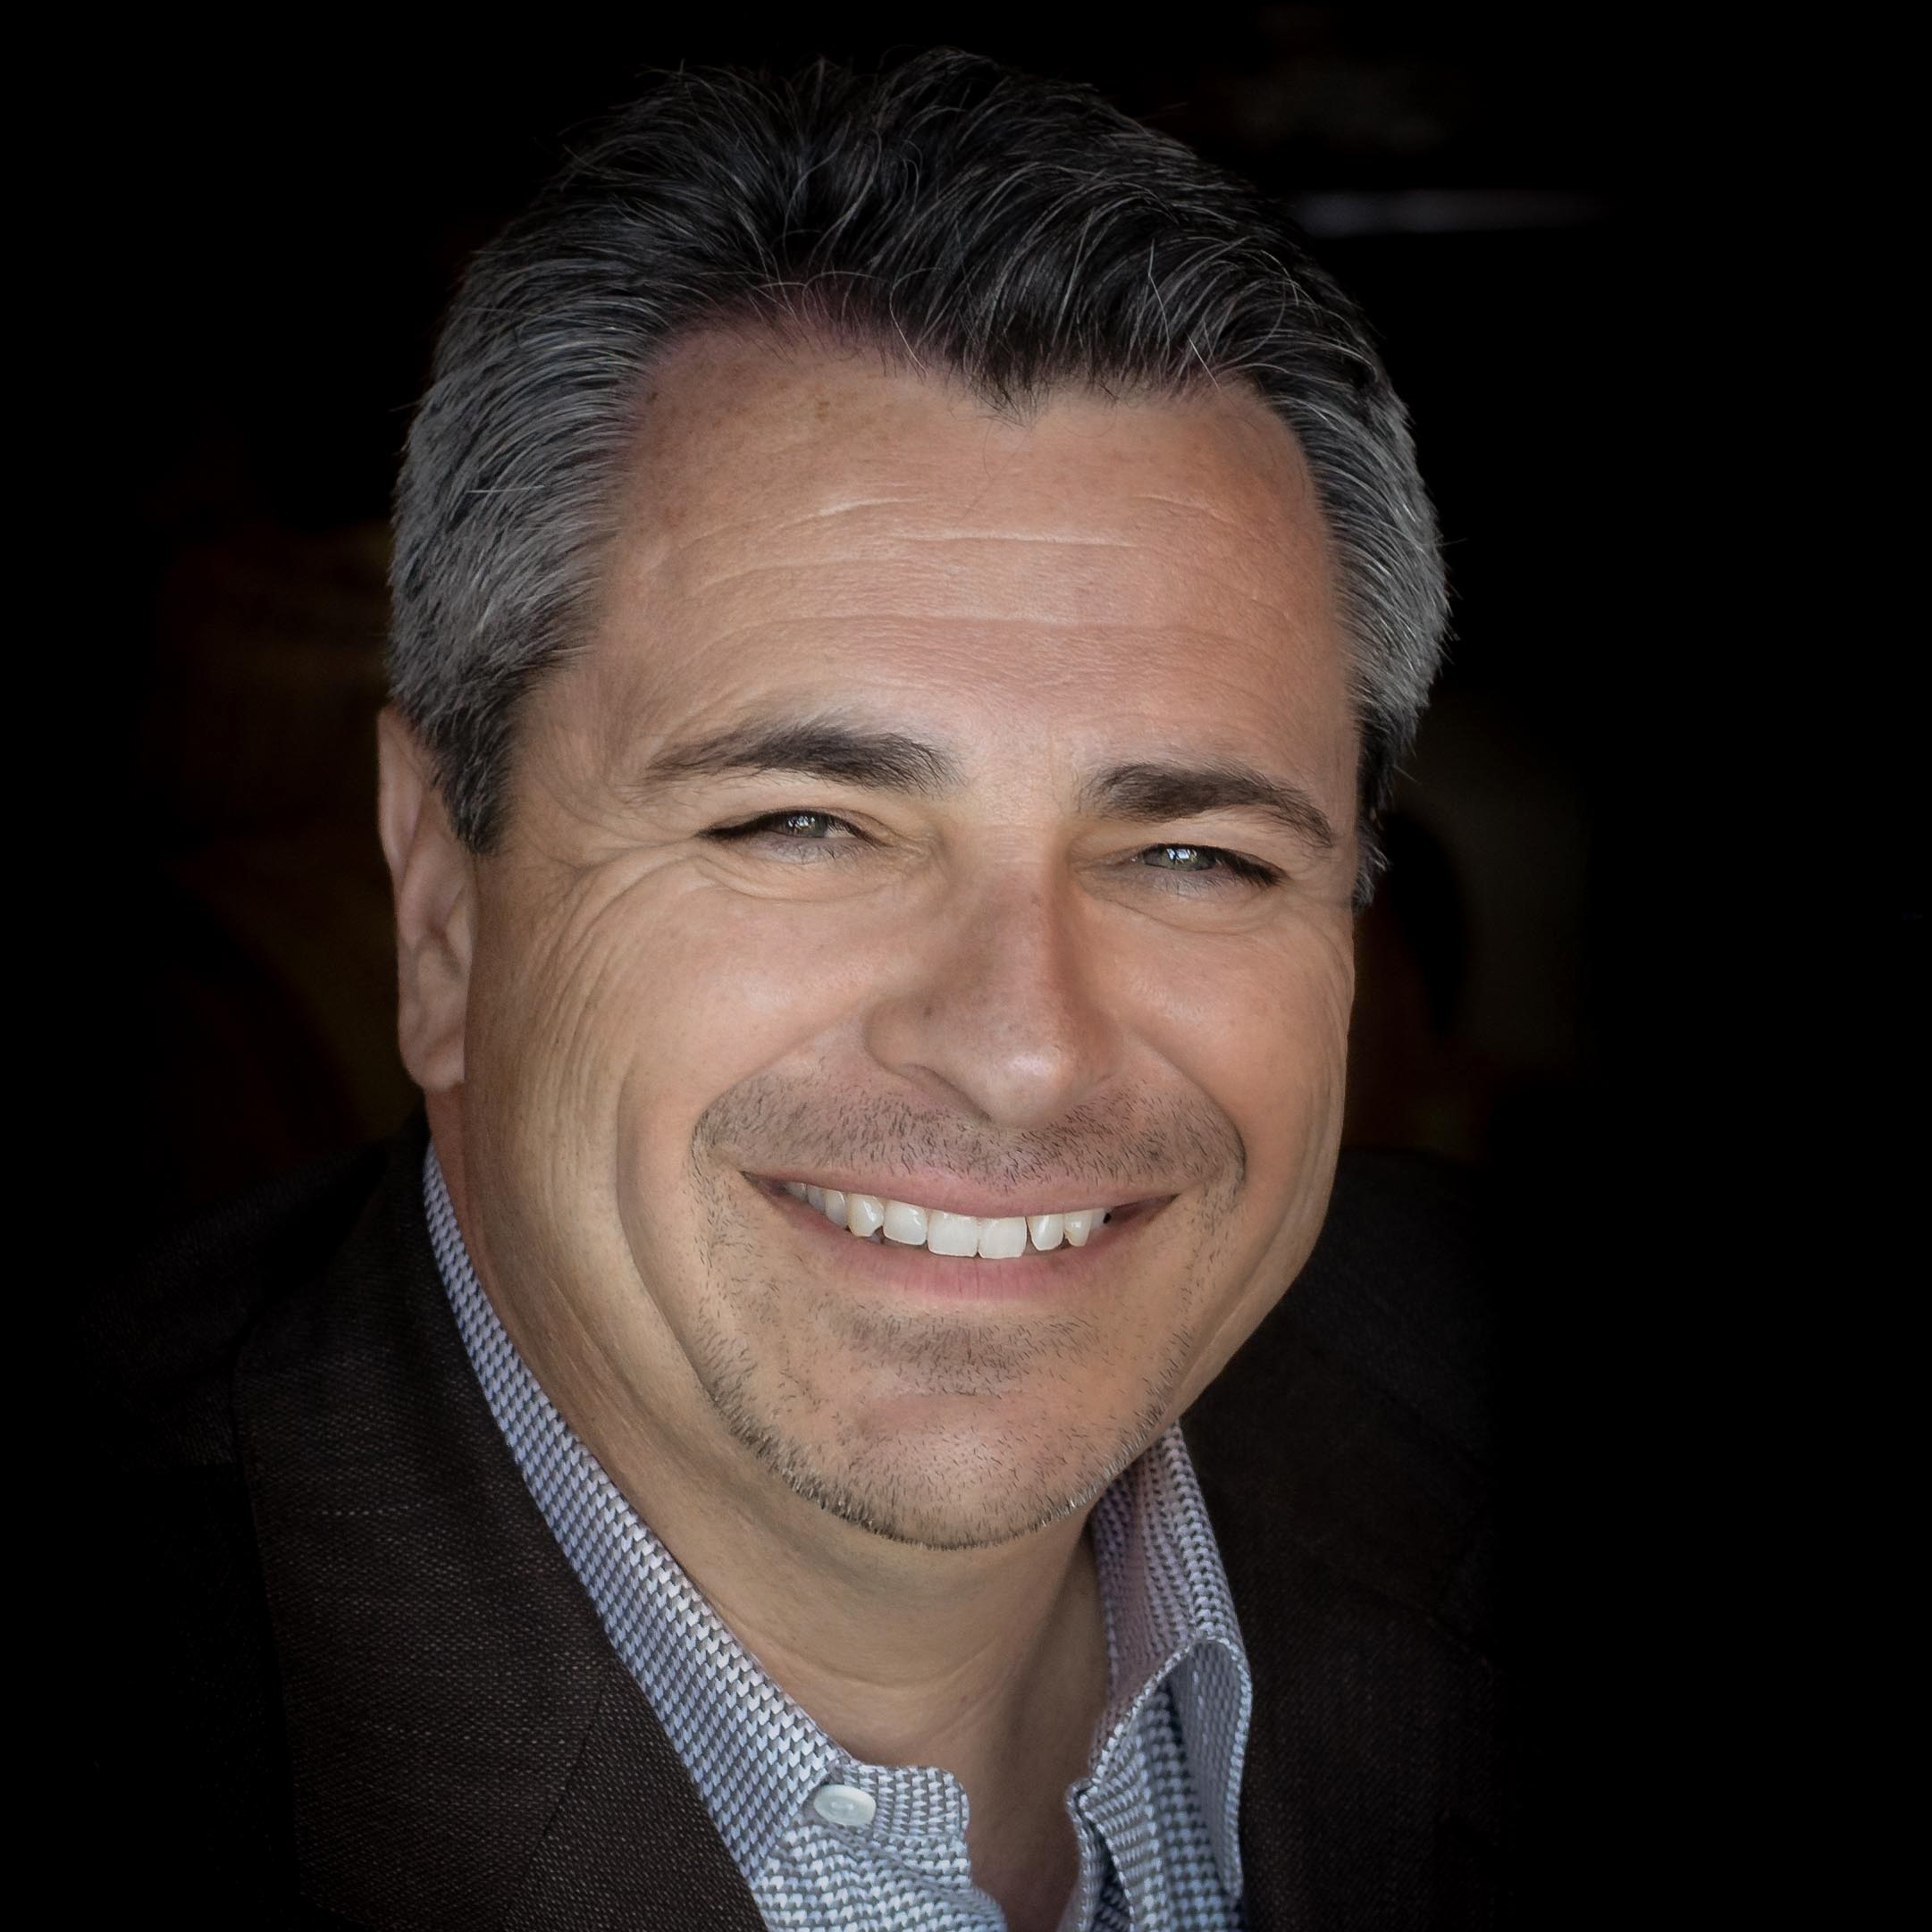 Brian Buffini on The Remarkable Leadership Podcast with Kevin Eikenberry